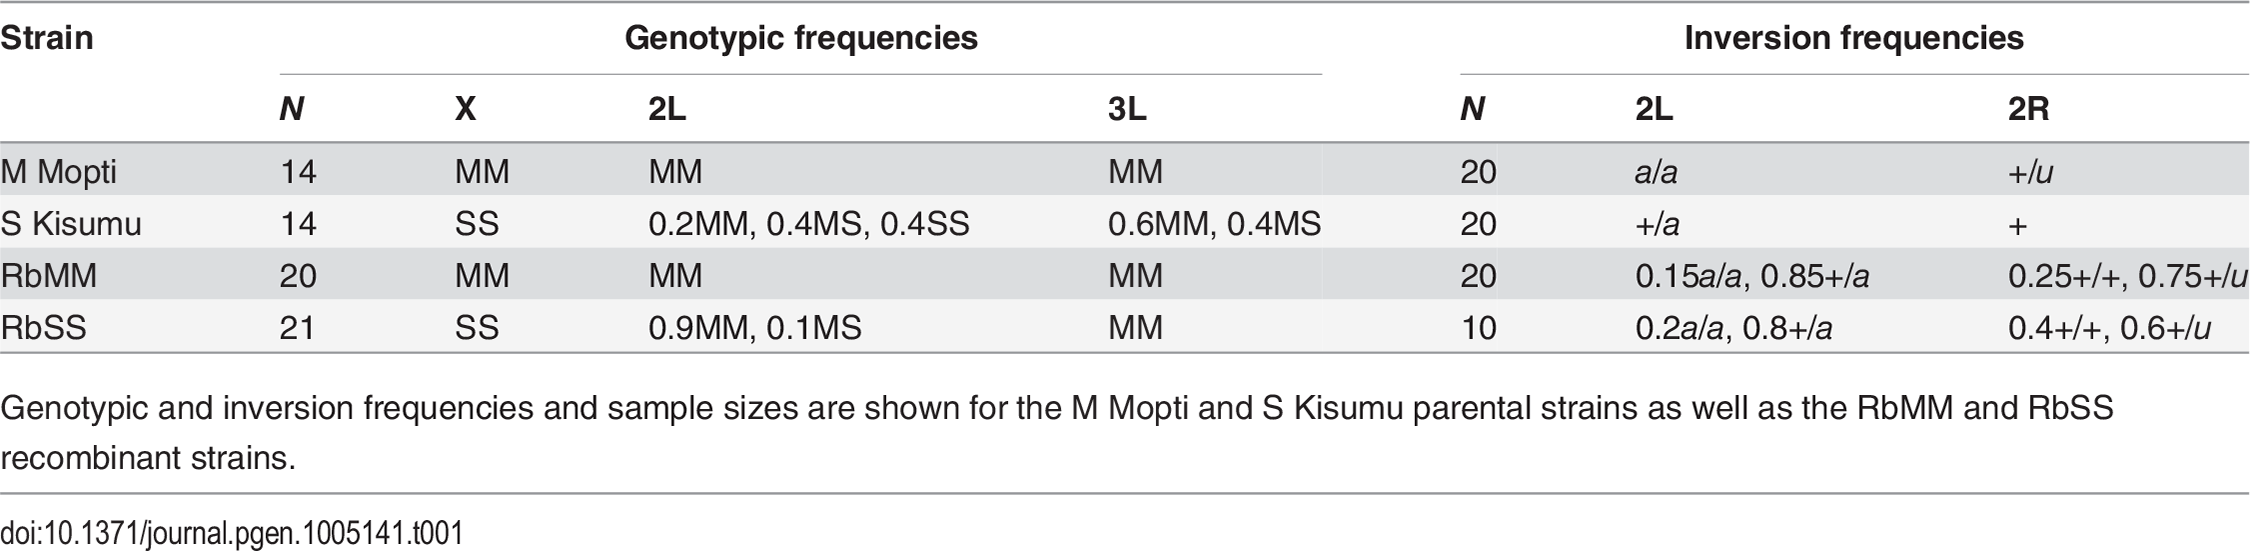 Recombinant and parental strains genotypes at the X, 2L and 3L divergence islands, and 2L and 2R inversion karyotypes.